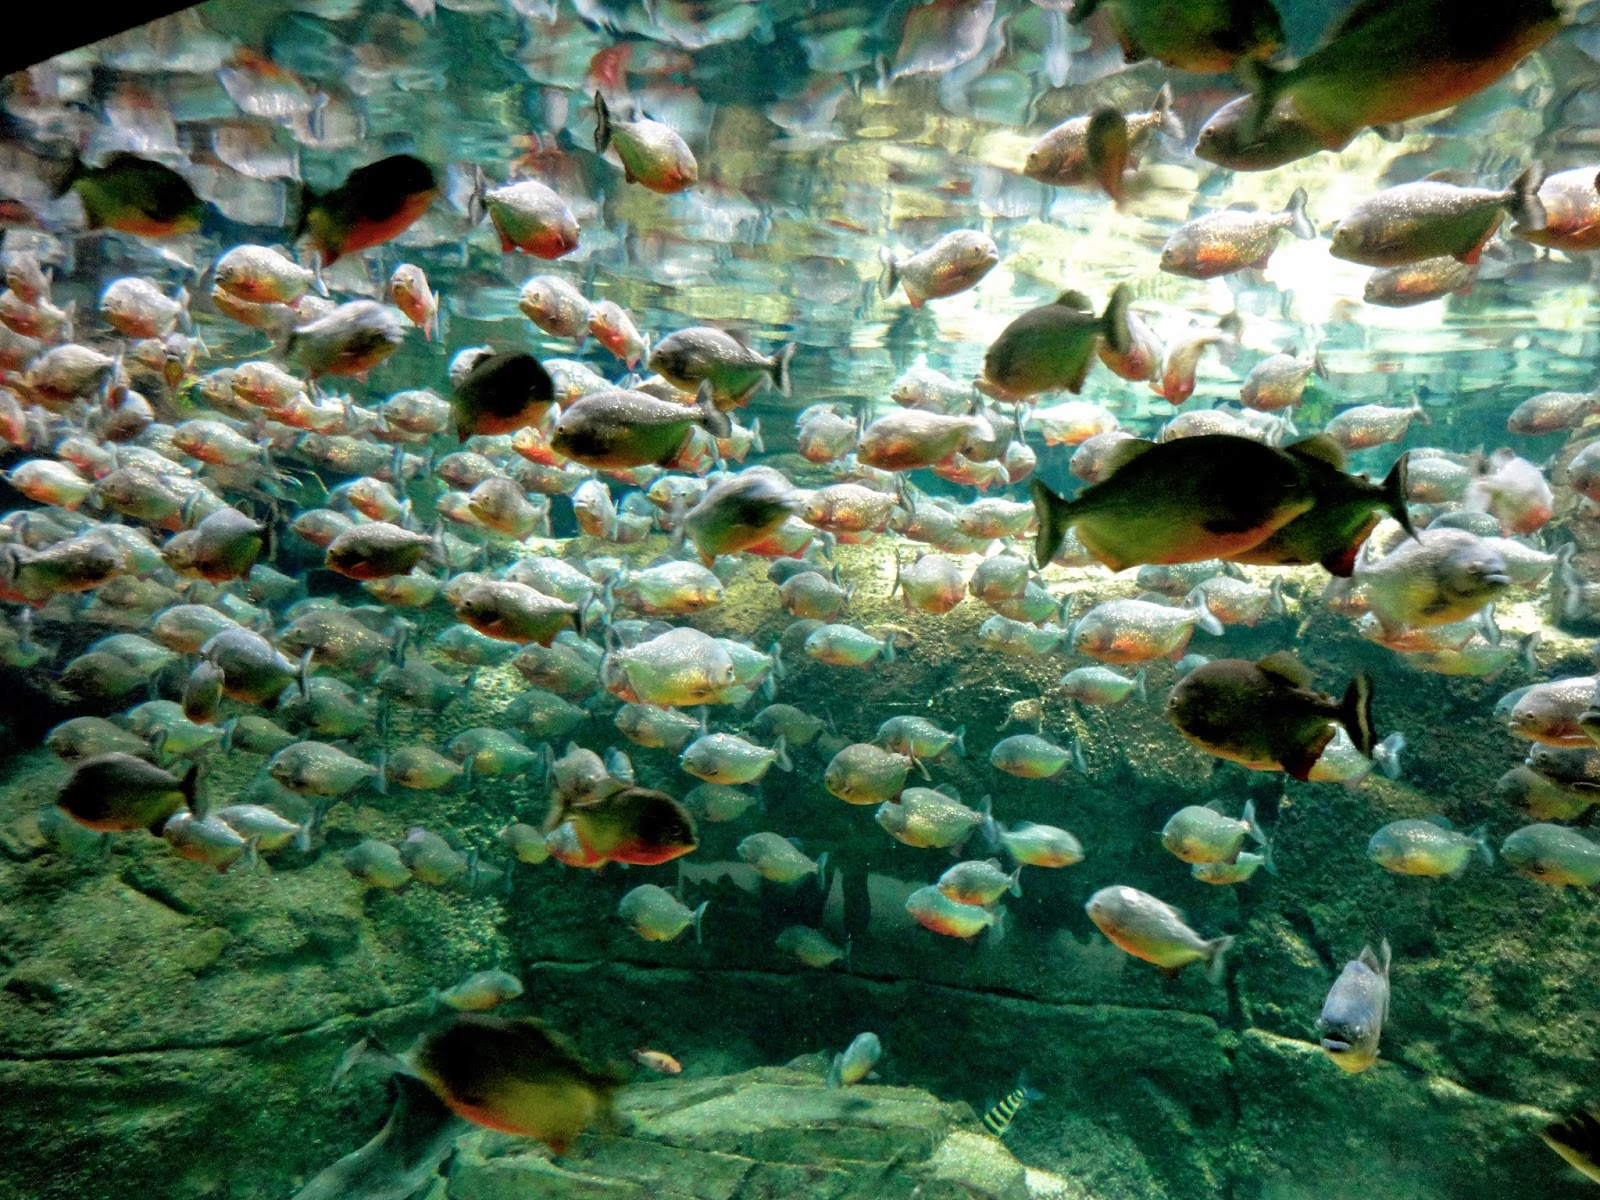 Piranha tank in Copenhagen aquarium